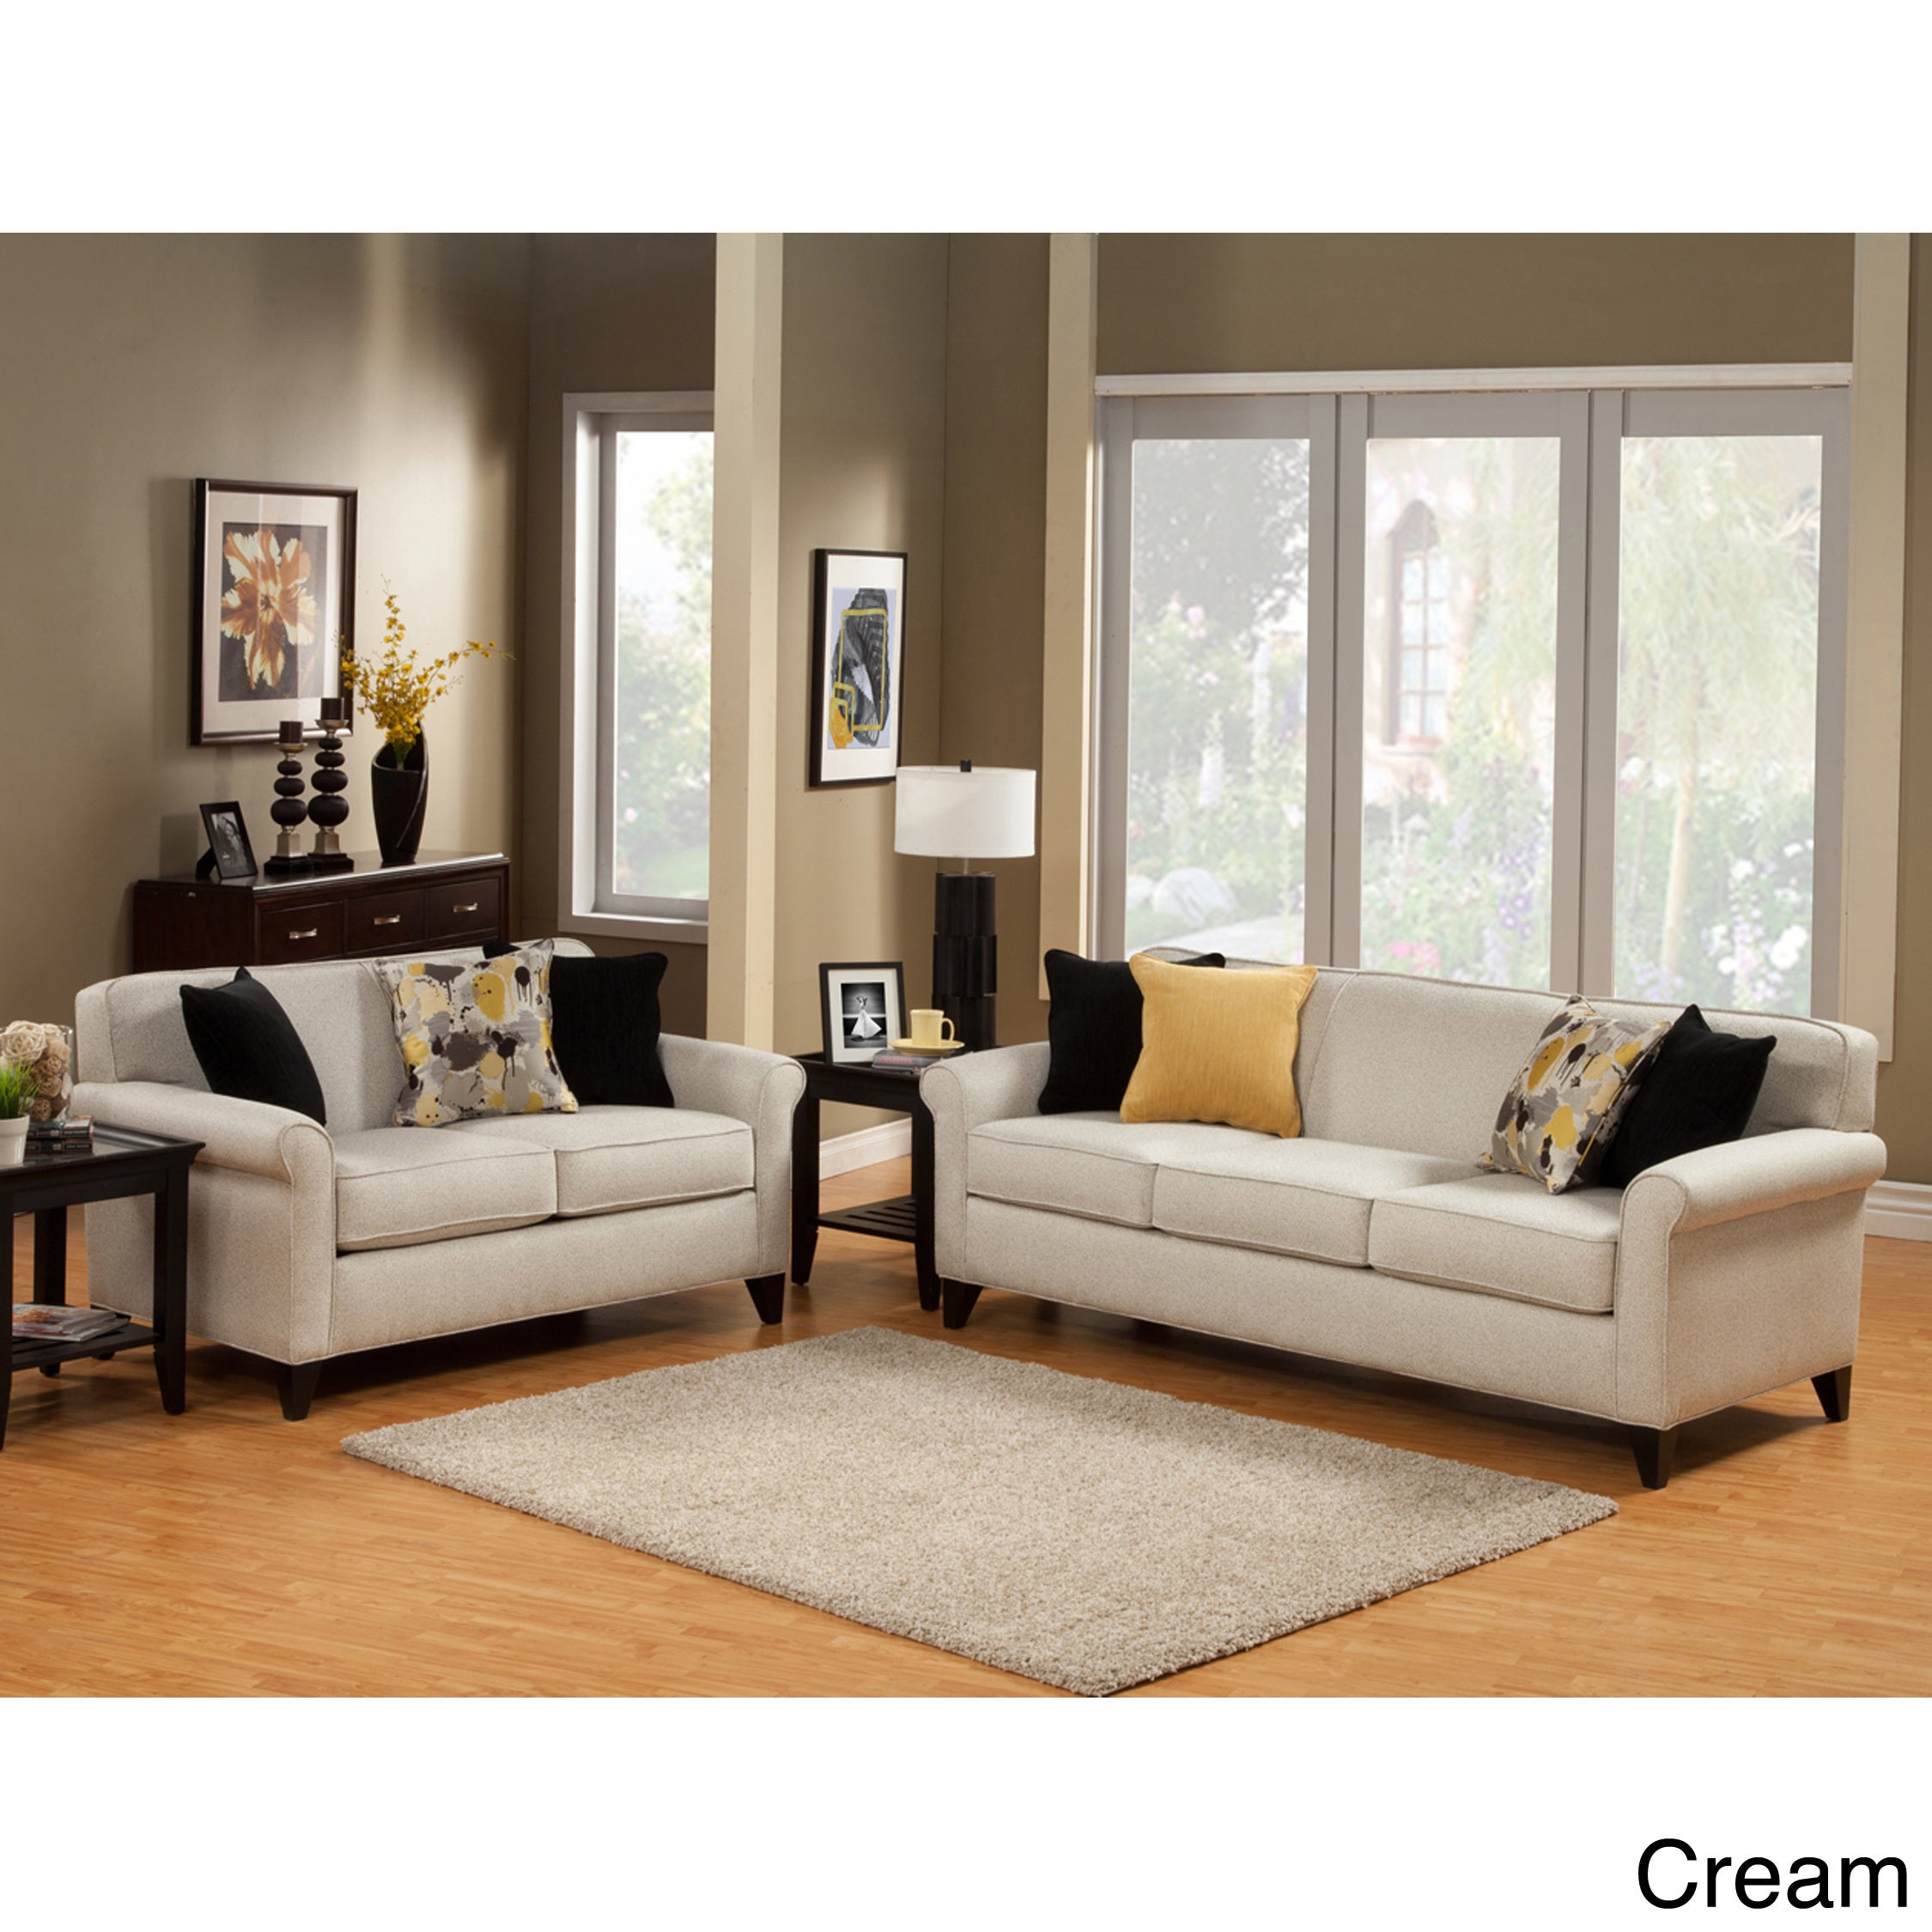 Furniture of america artistica sleek modern 2 piece for Sofa set deals